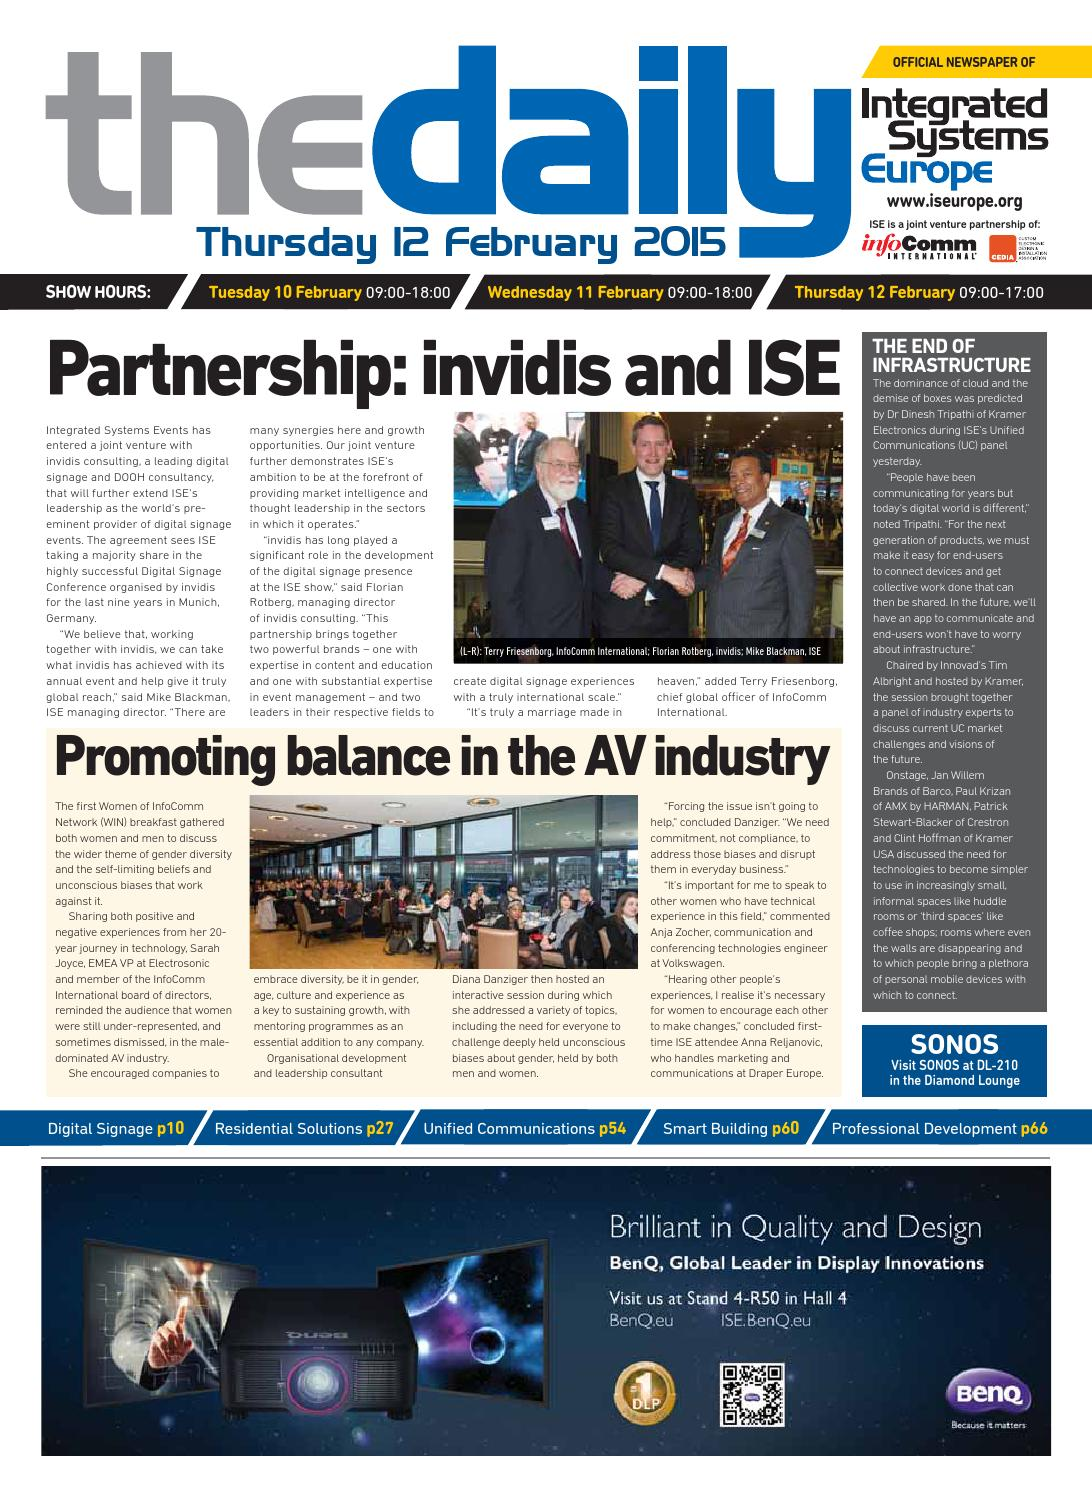 Av asia pacific magazine the new samsung smart signage platform av - Ise Daily Thursday 12 February 2015